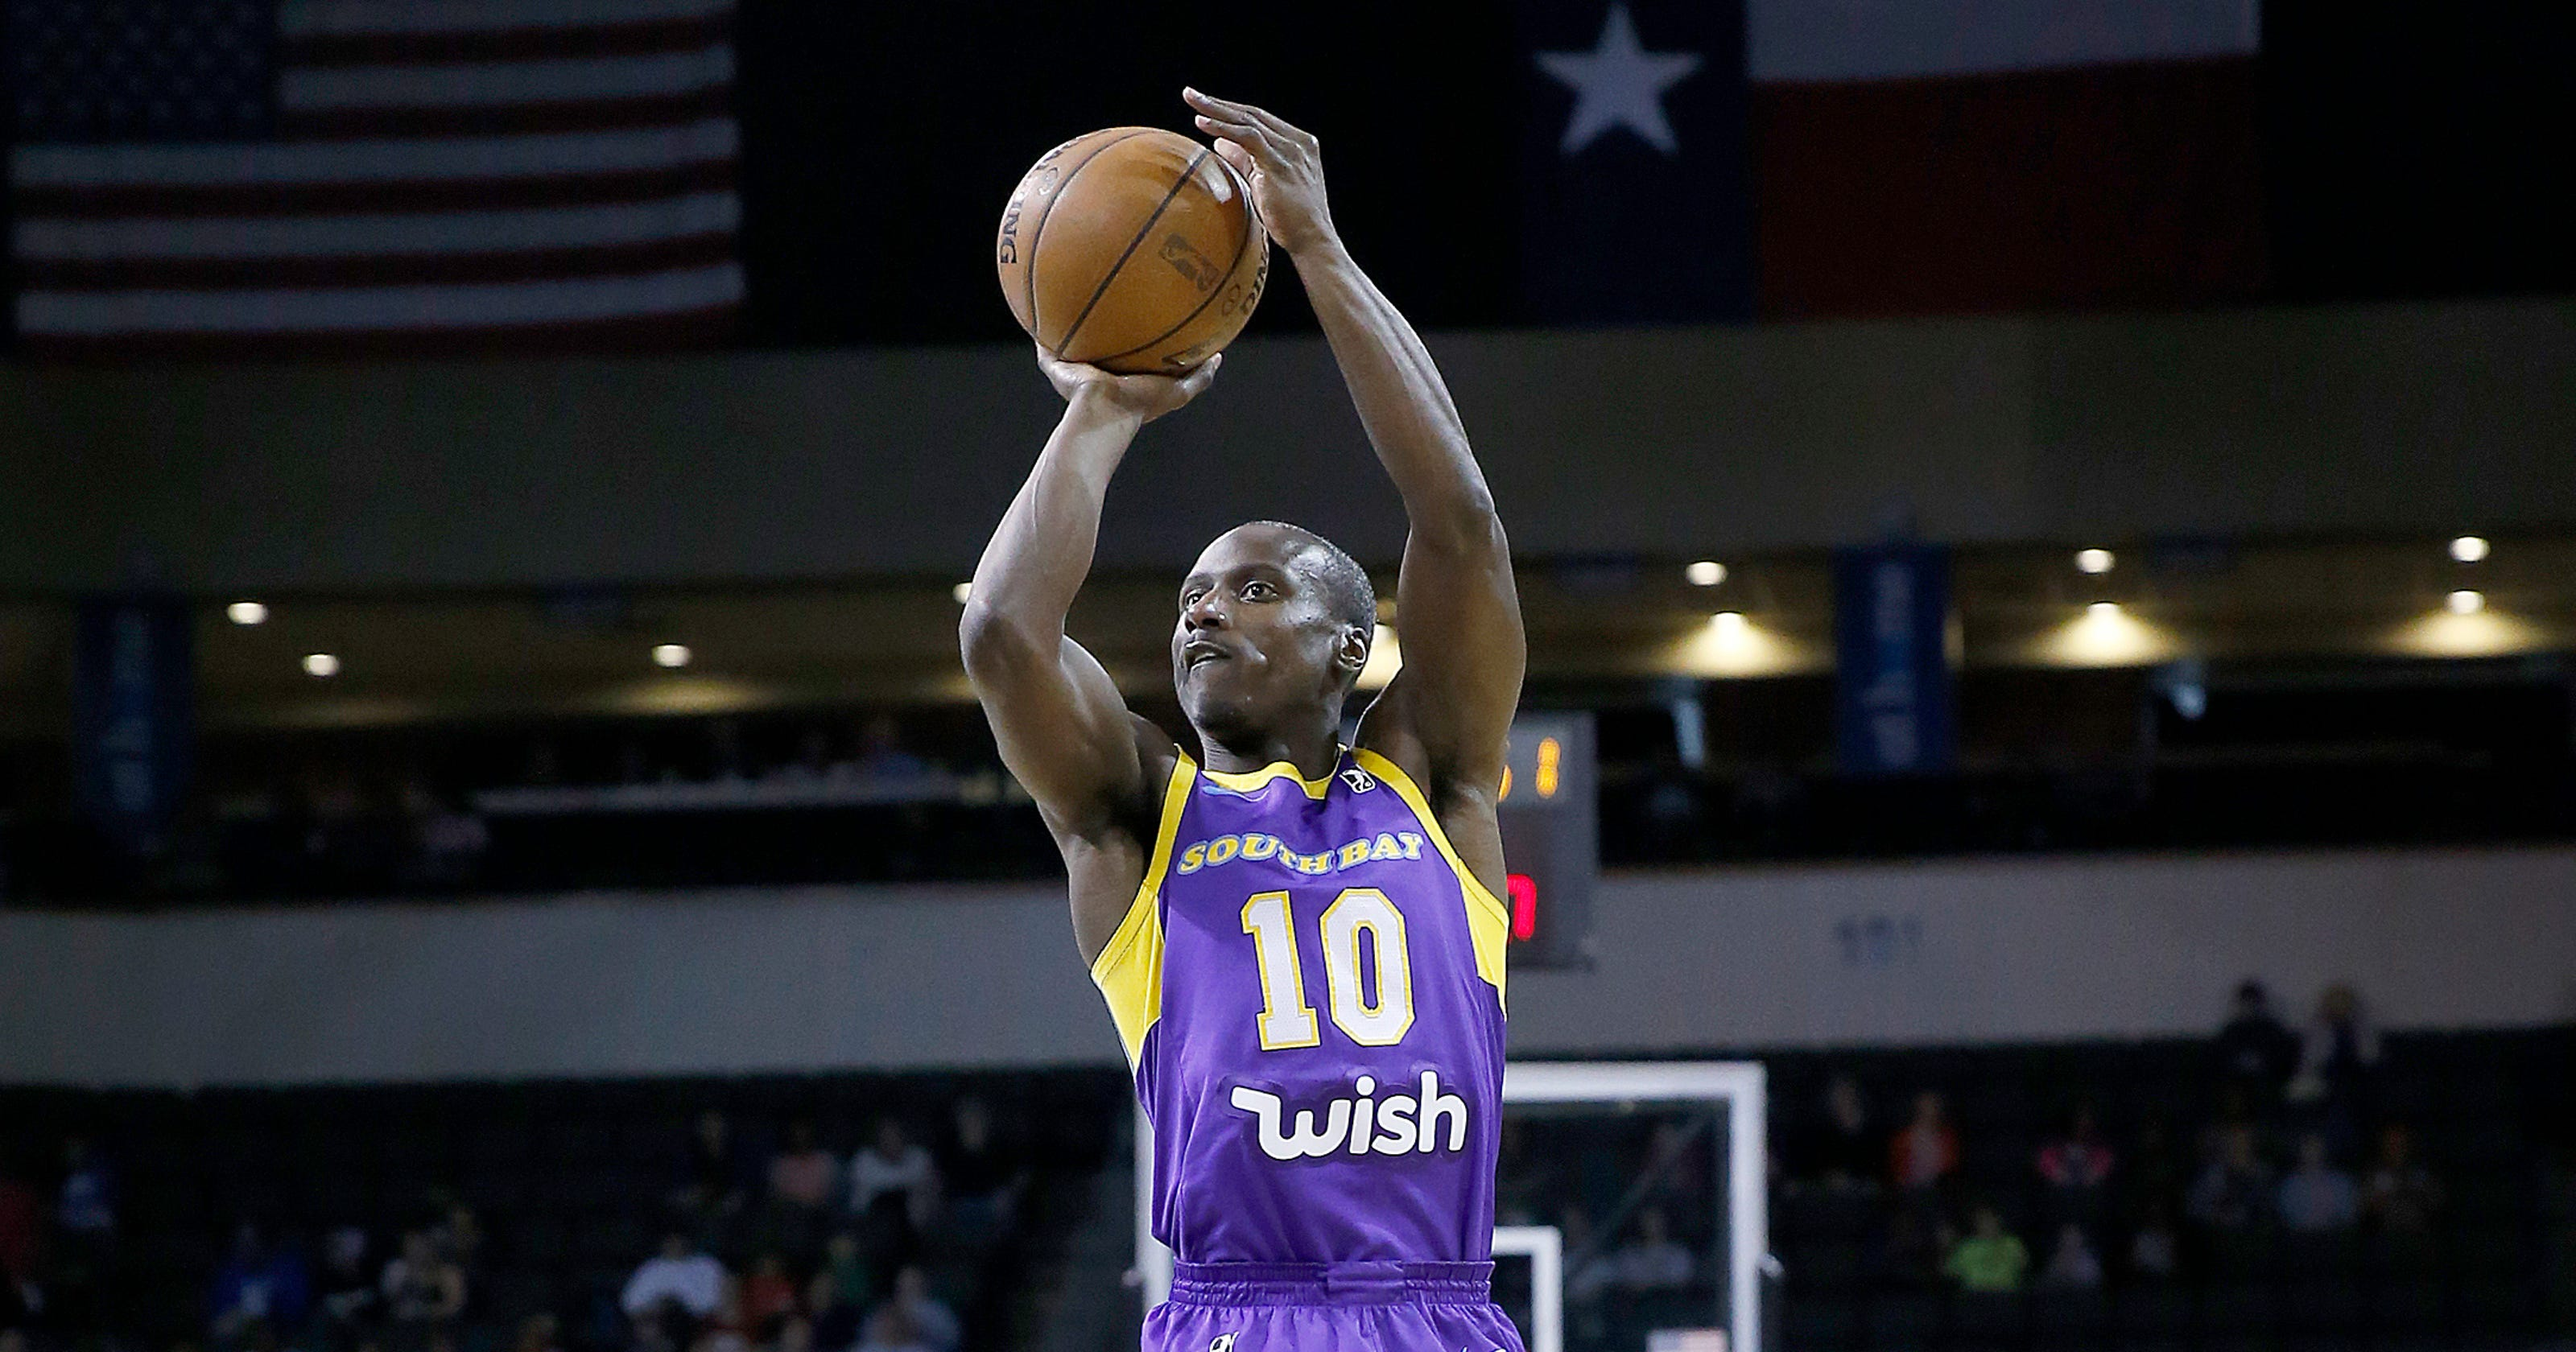 e0edfd4e9 Lakers surprise G League veteran Andre Ingram with emotional call-up in  viral video